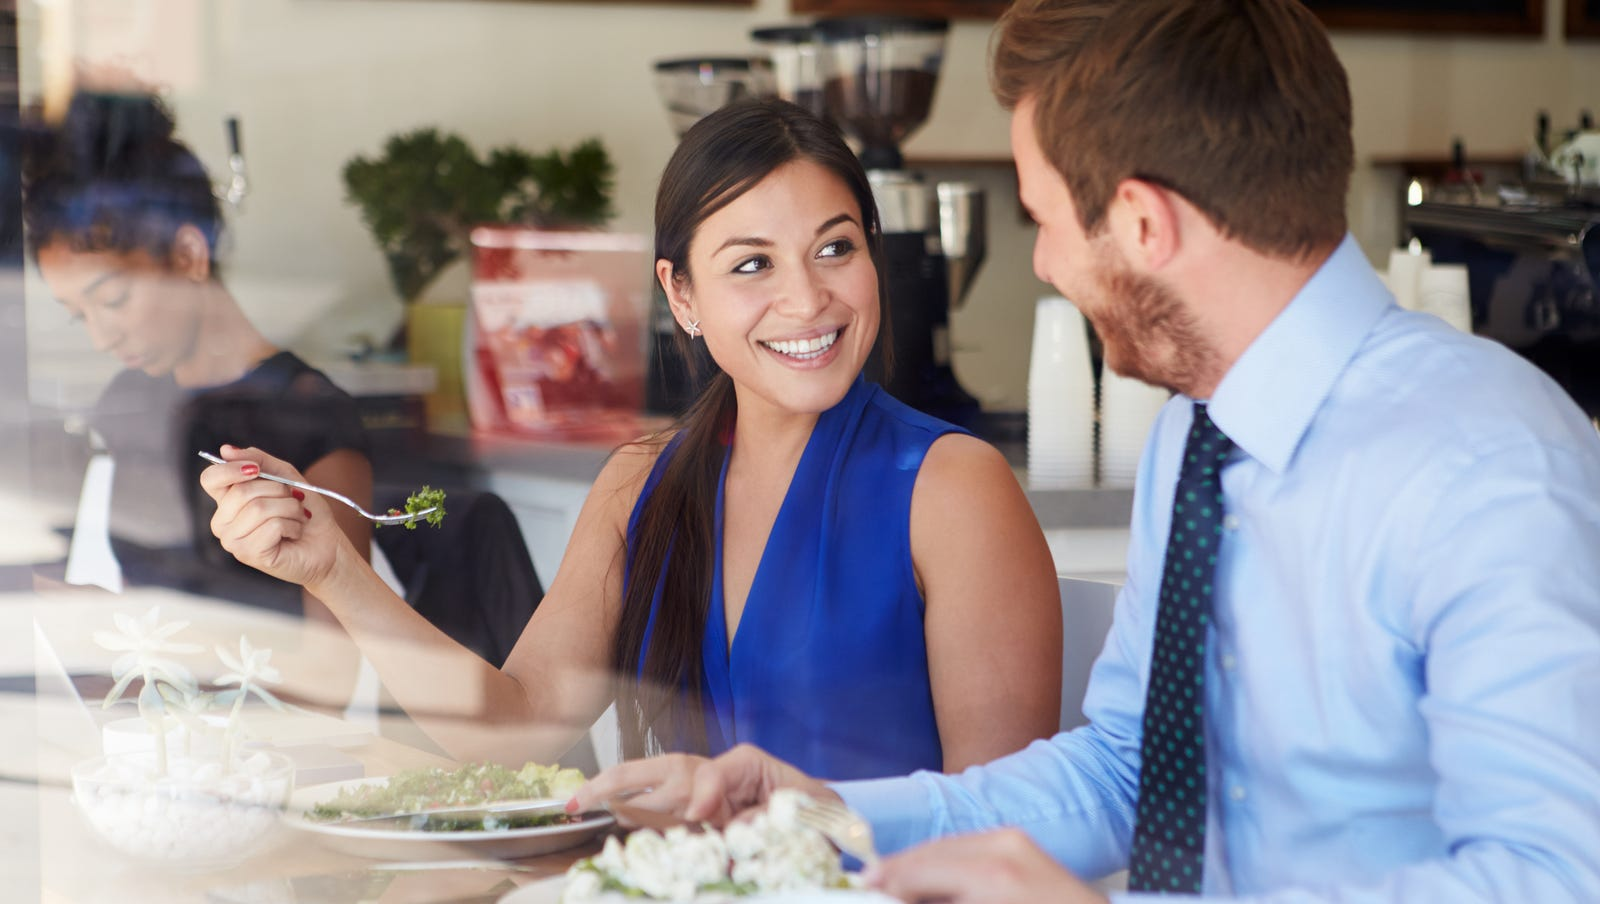 Etiquette tip of the week: Busy is a choice